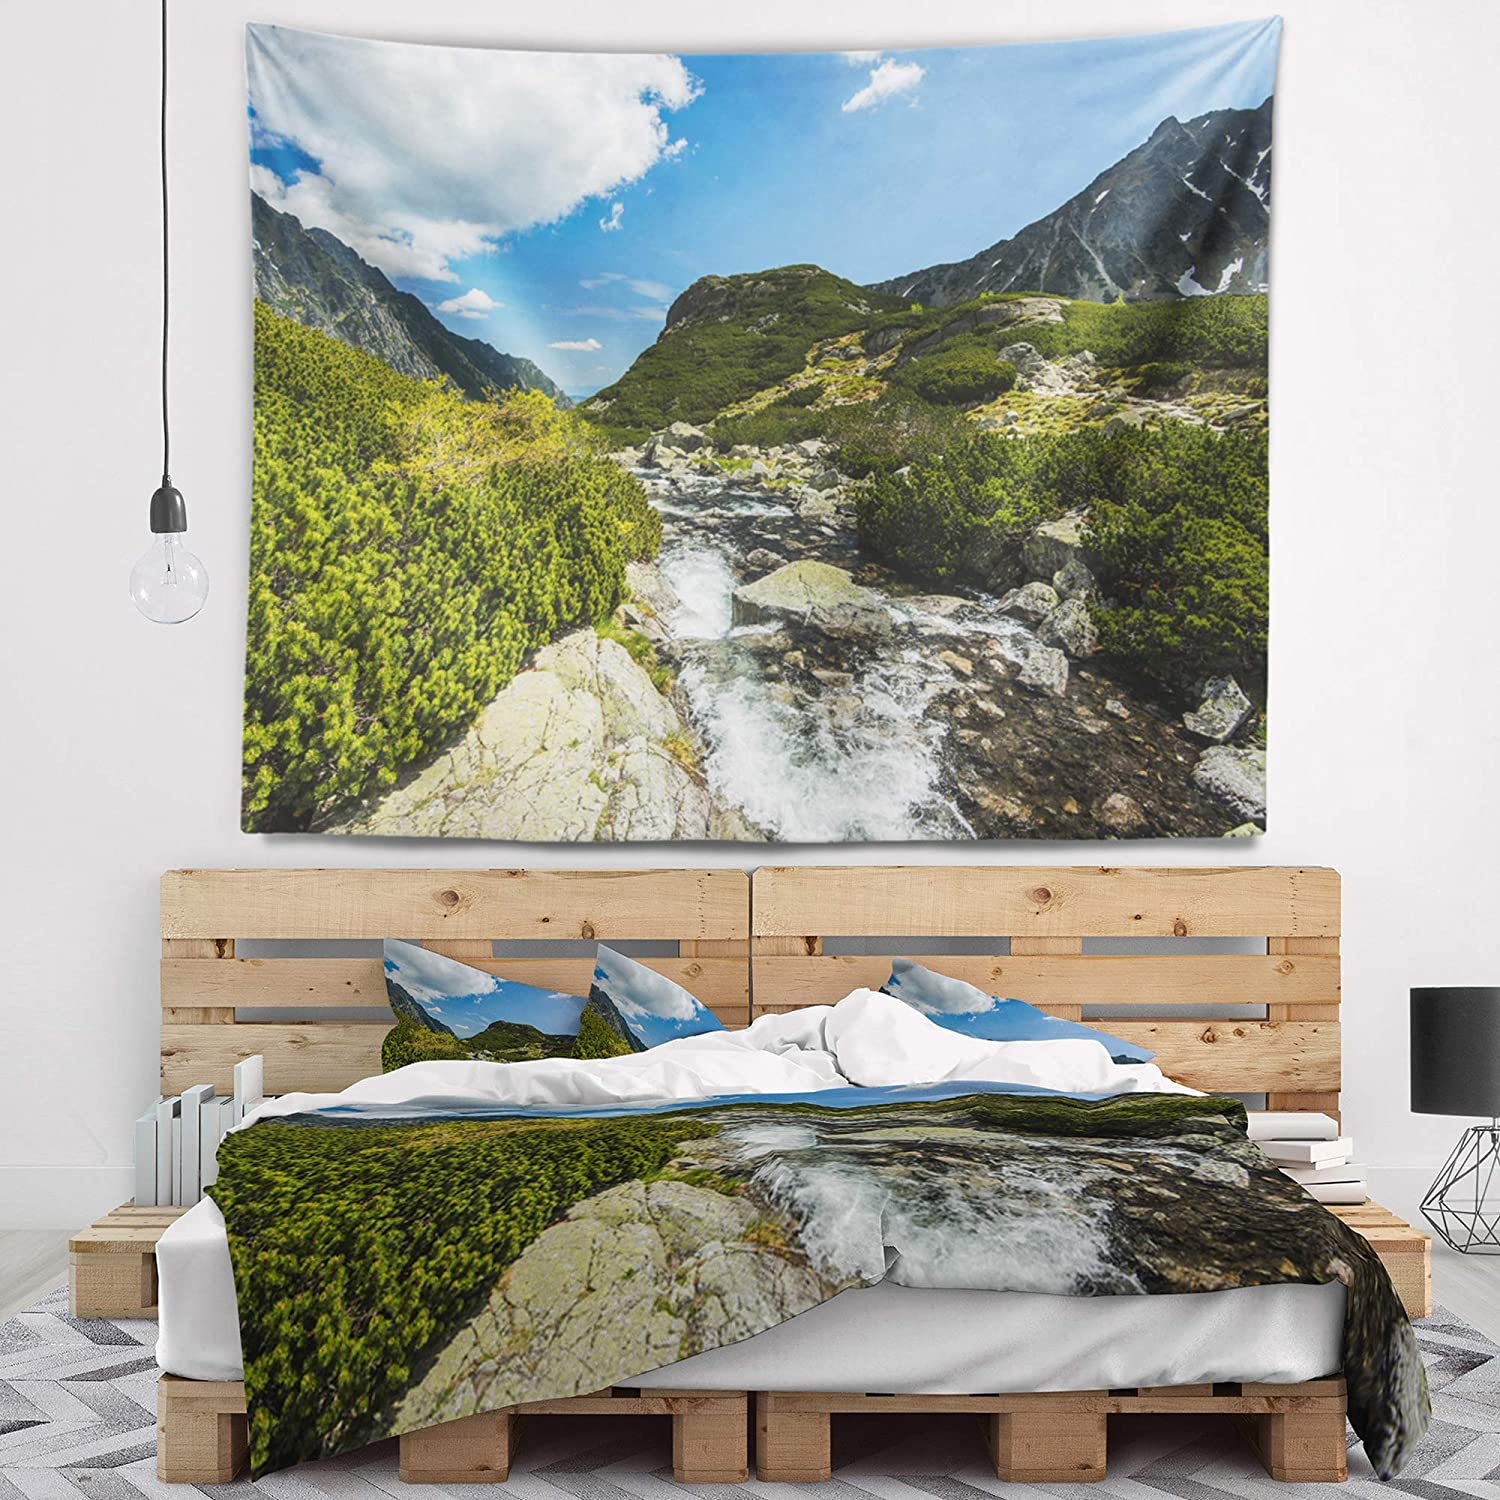 Designart TAP9863-60-50 Alpine Stream in High Mountains Wall Tapestry Large//60 x 50